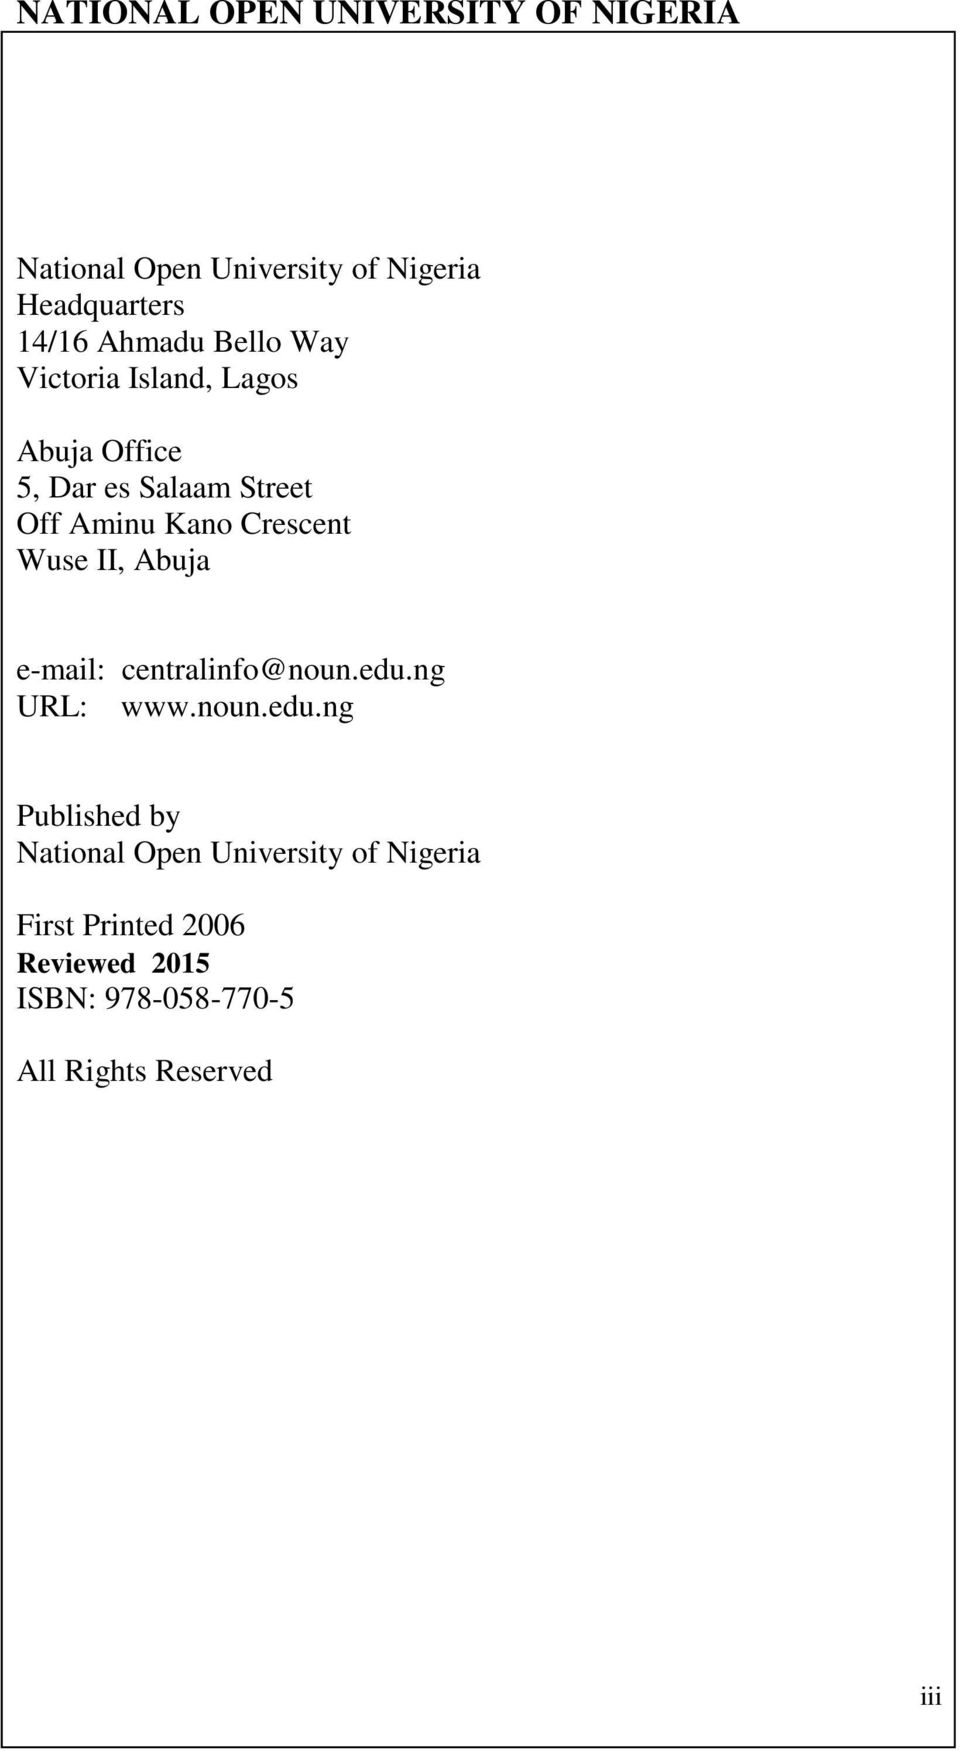 National Open University Of Nigeria School Of Education Course Code